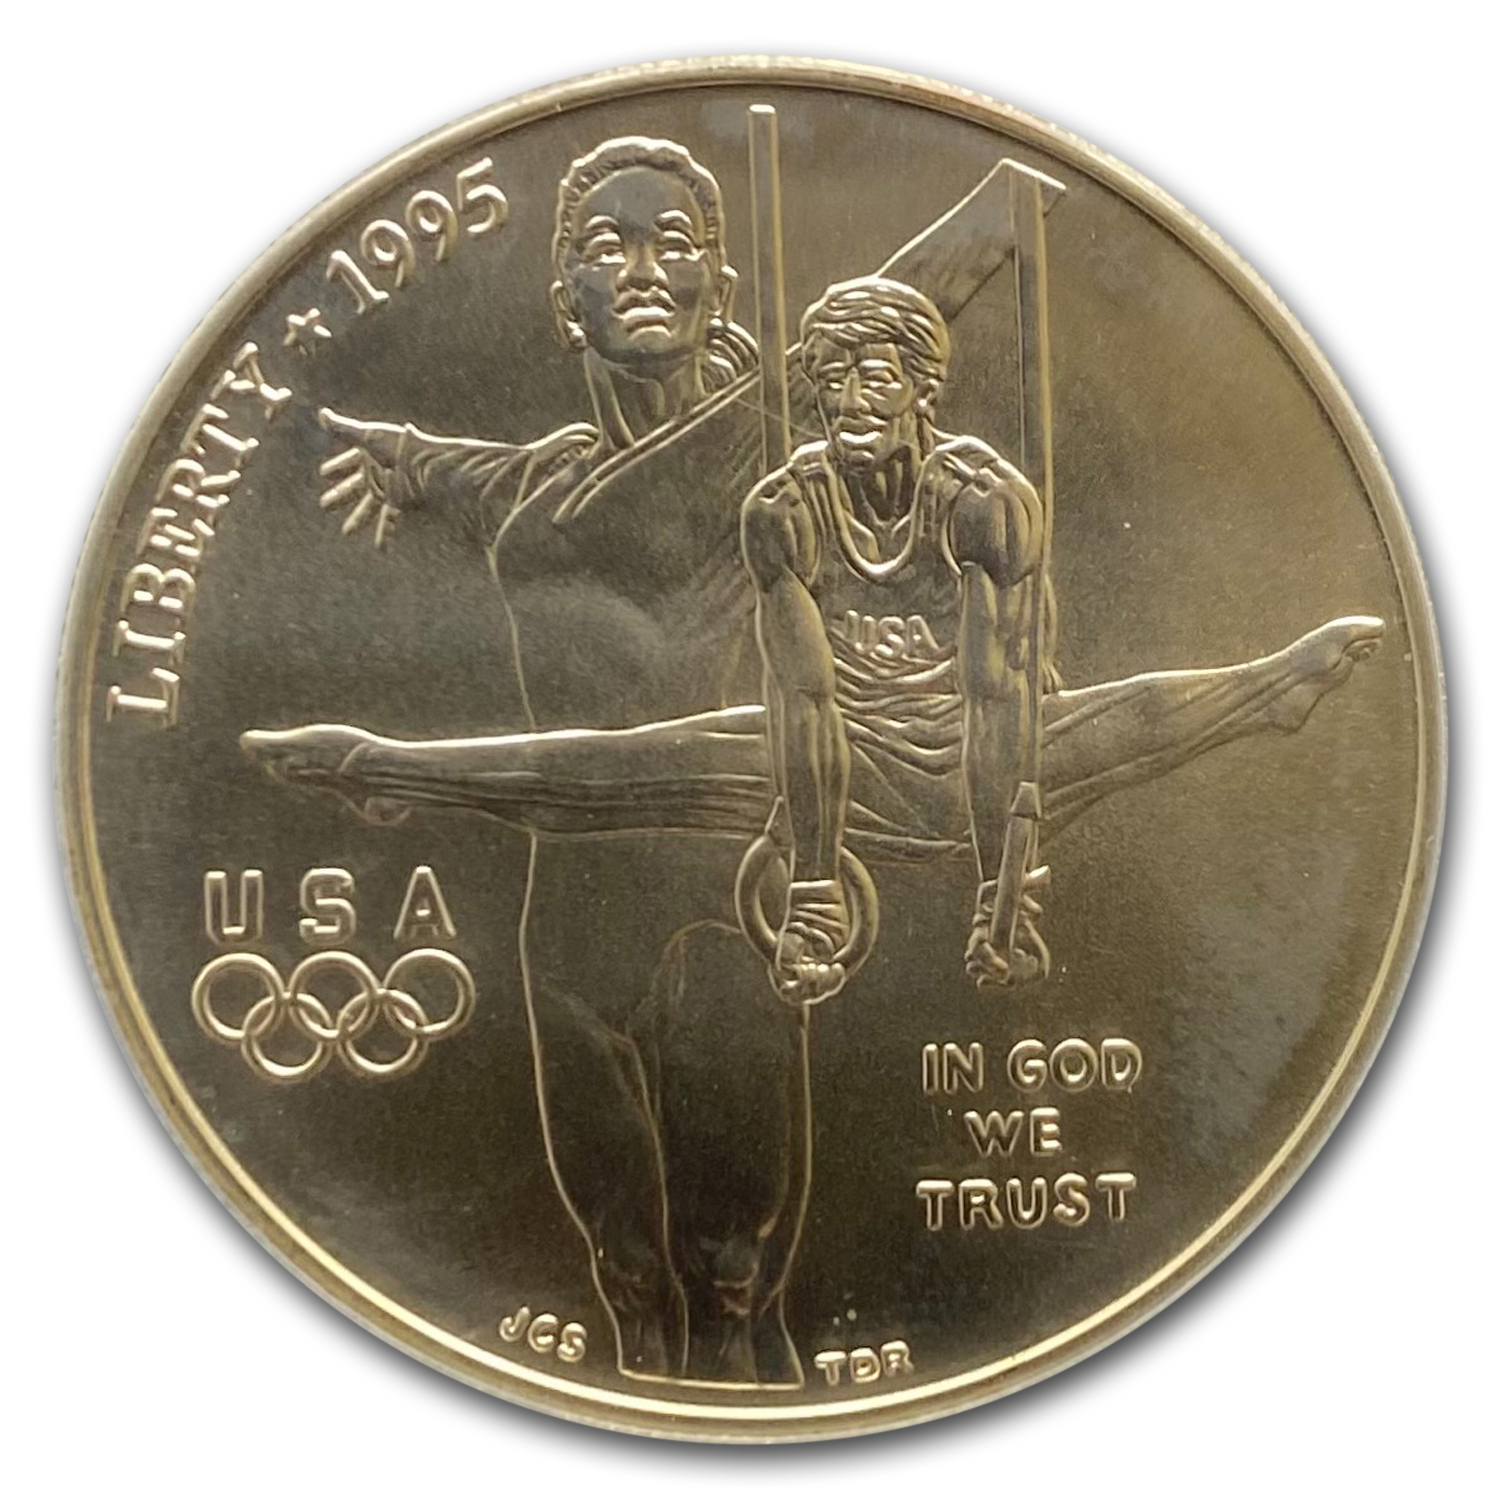 1995-D Olympic Gymnast $1 Silver Commemorative - MS-69 PCGS